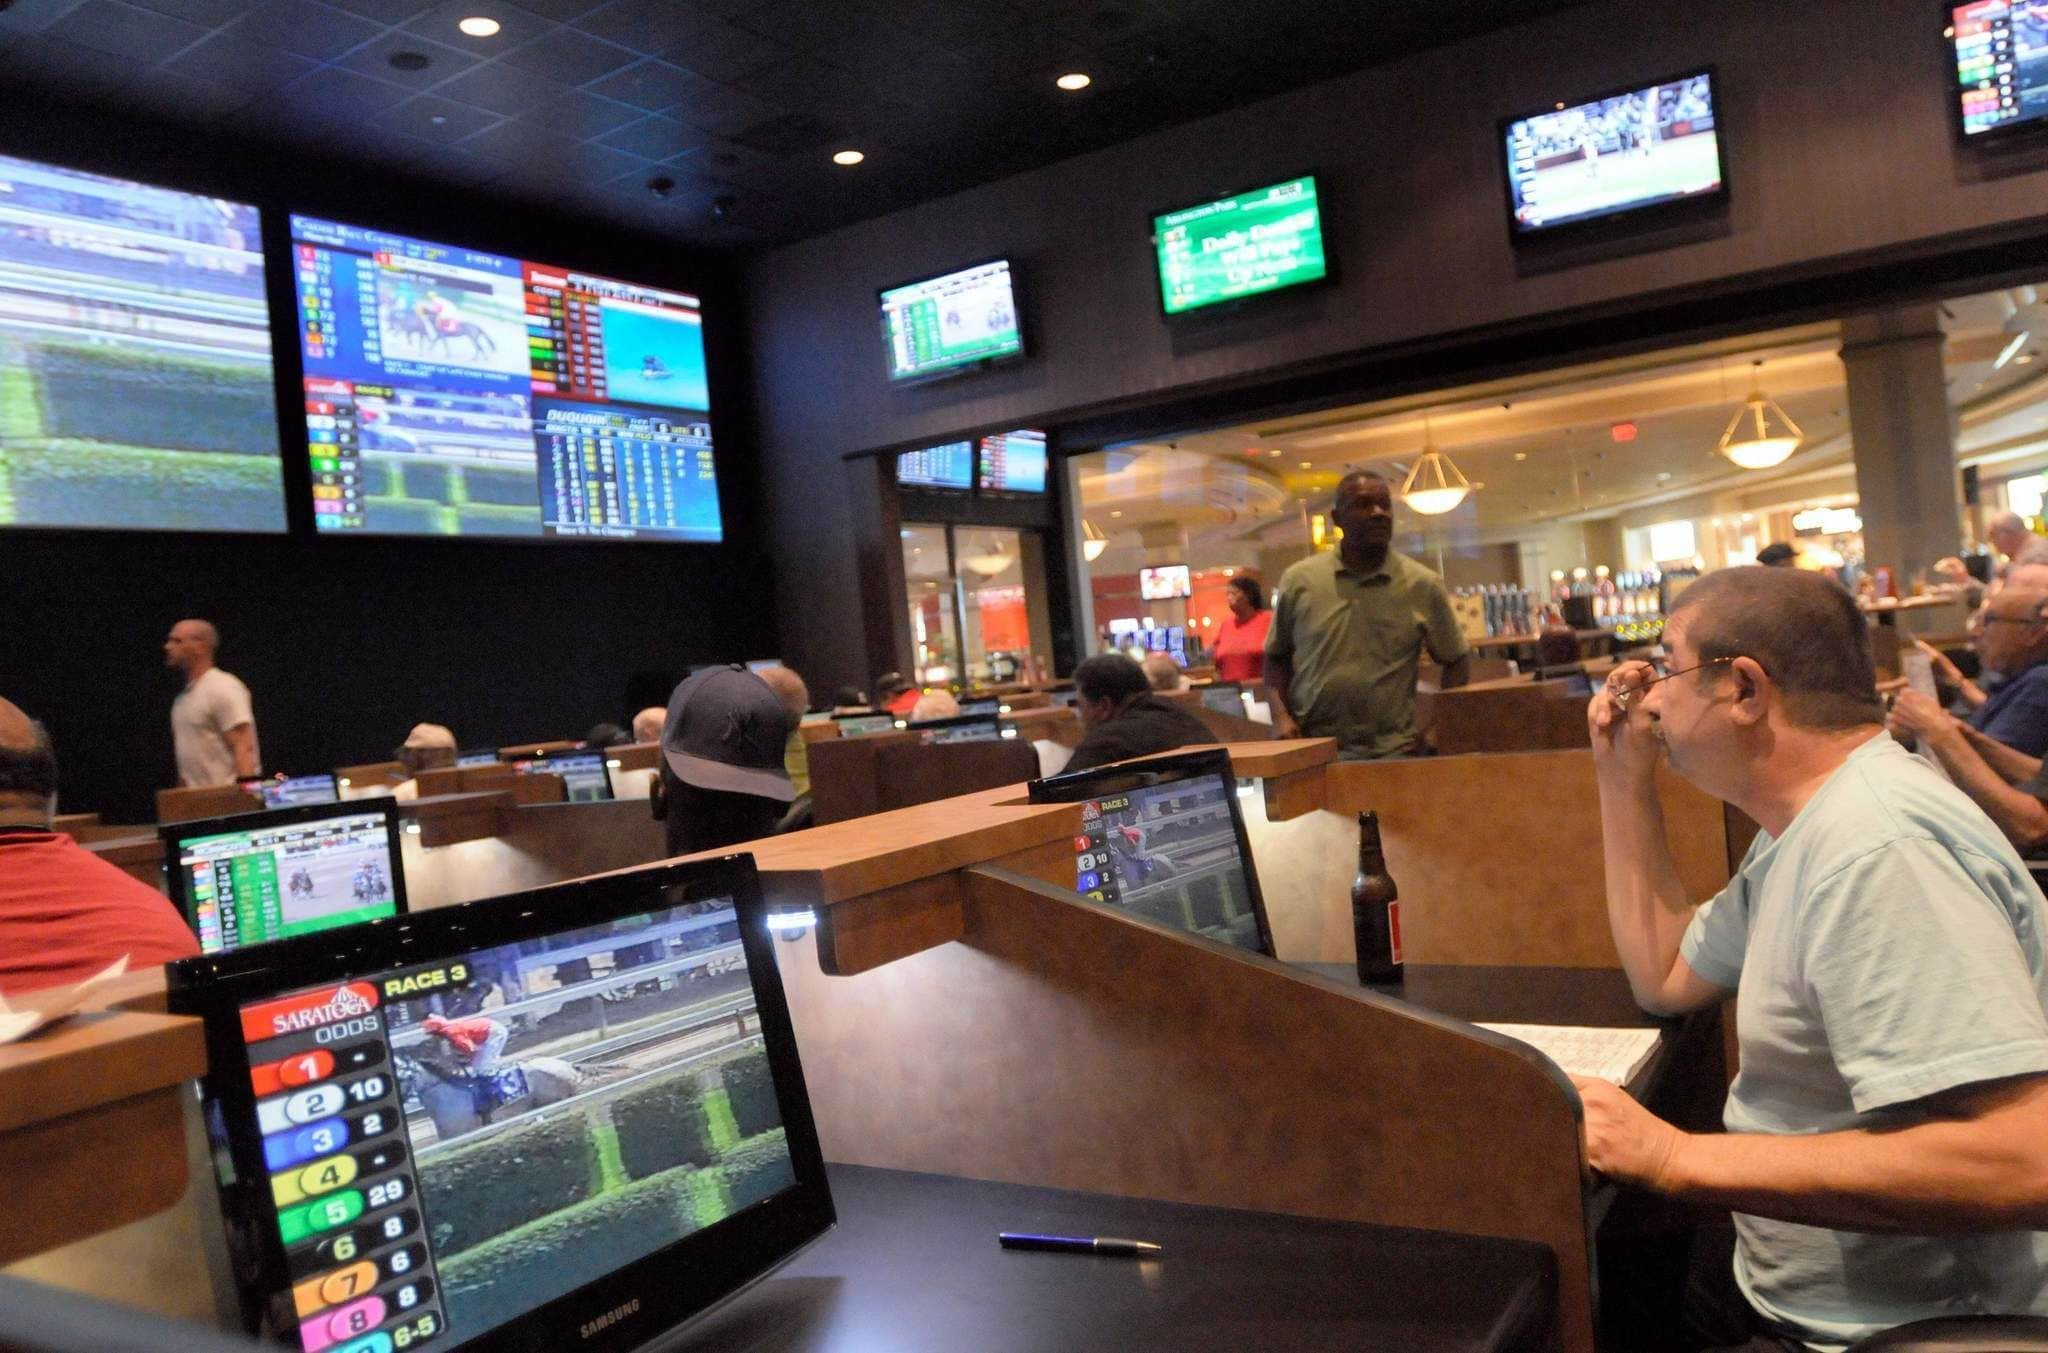 Acting US Solicitor General Advises Scotus to Decline NJ Sports Betting Appeal